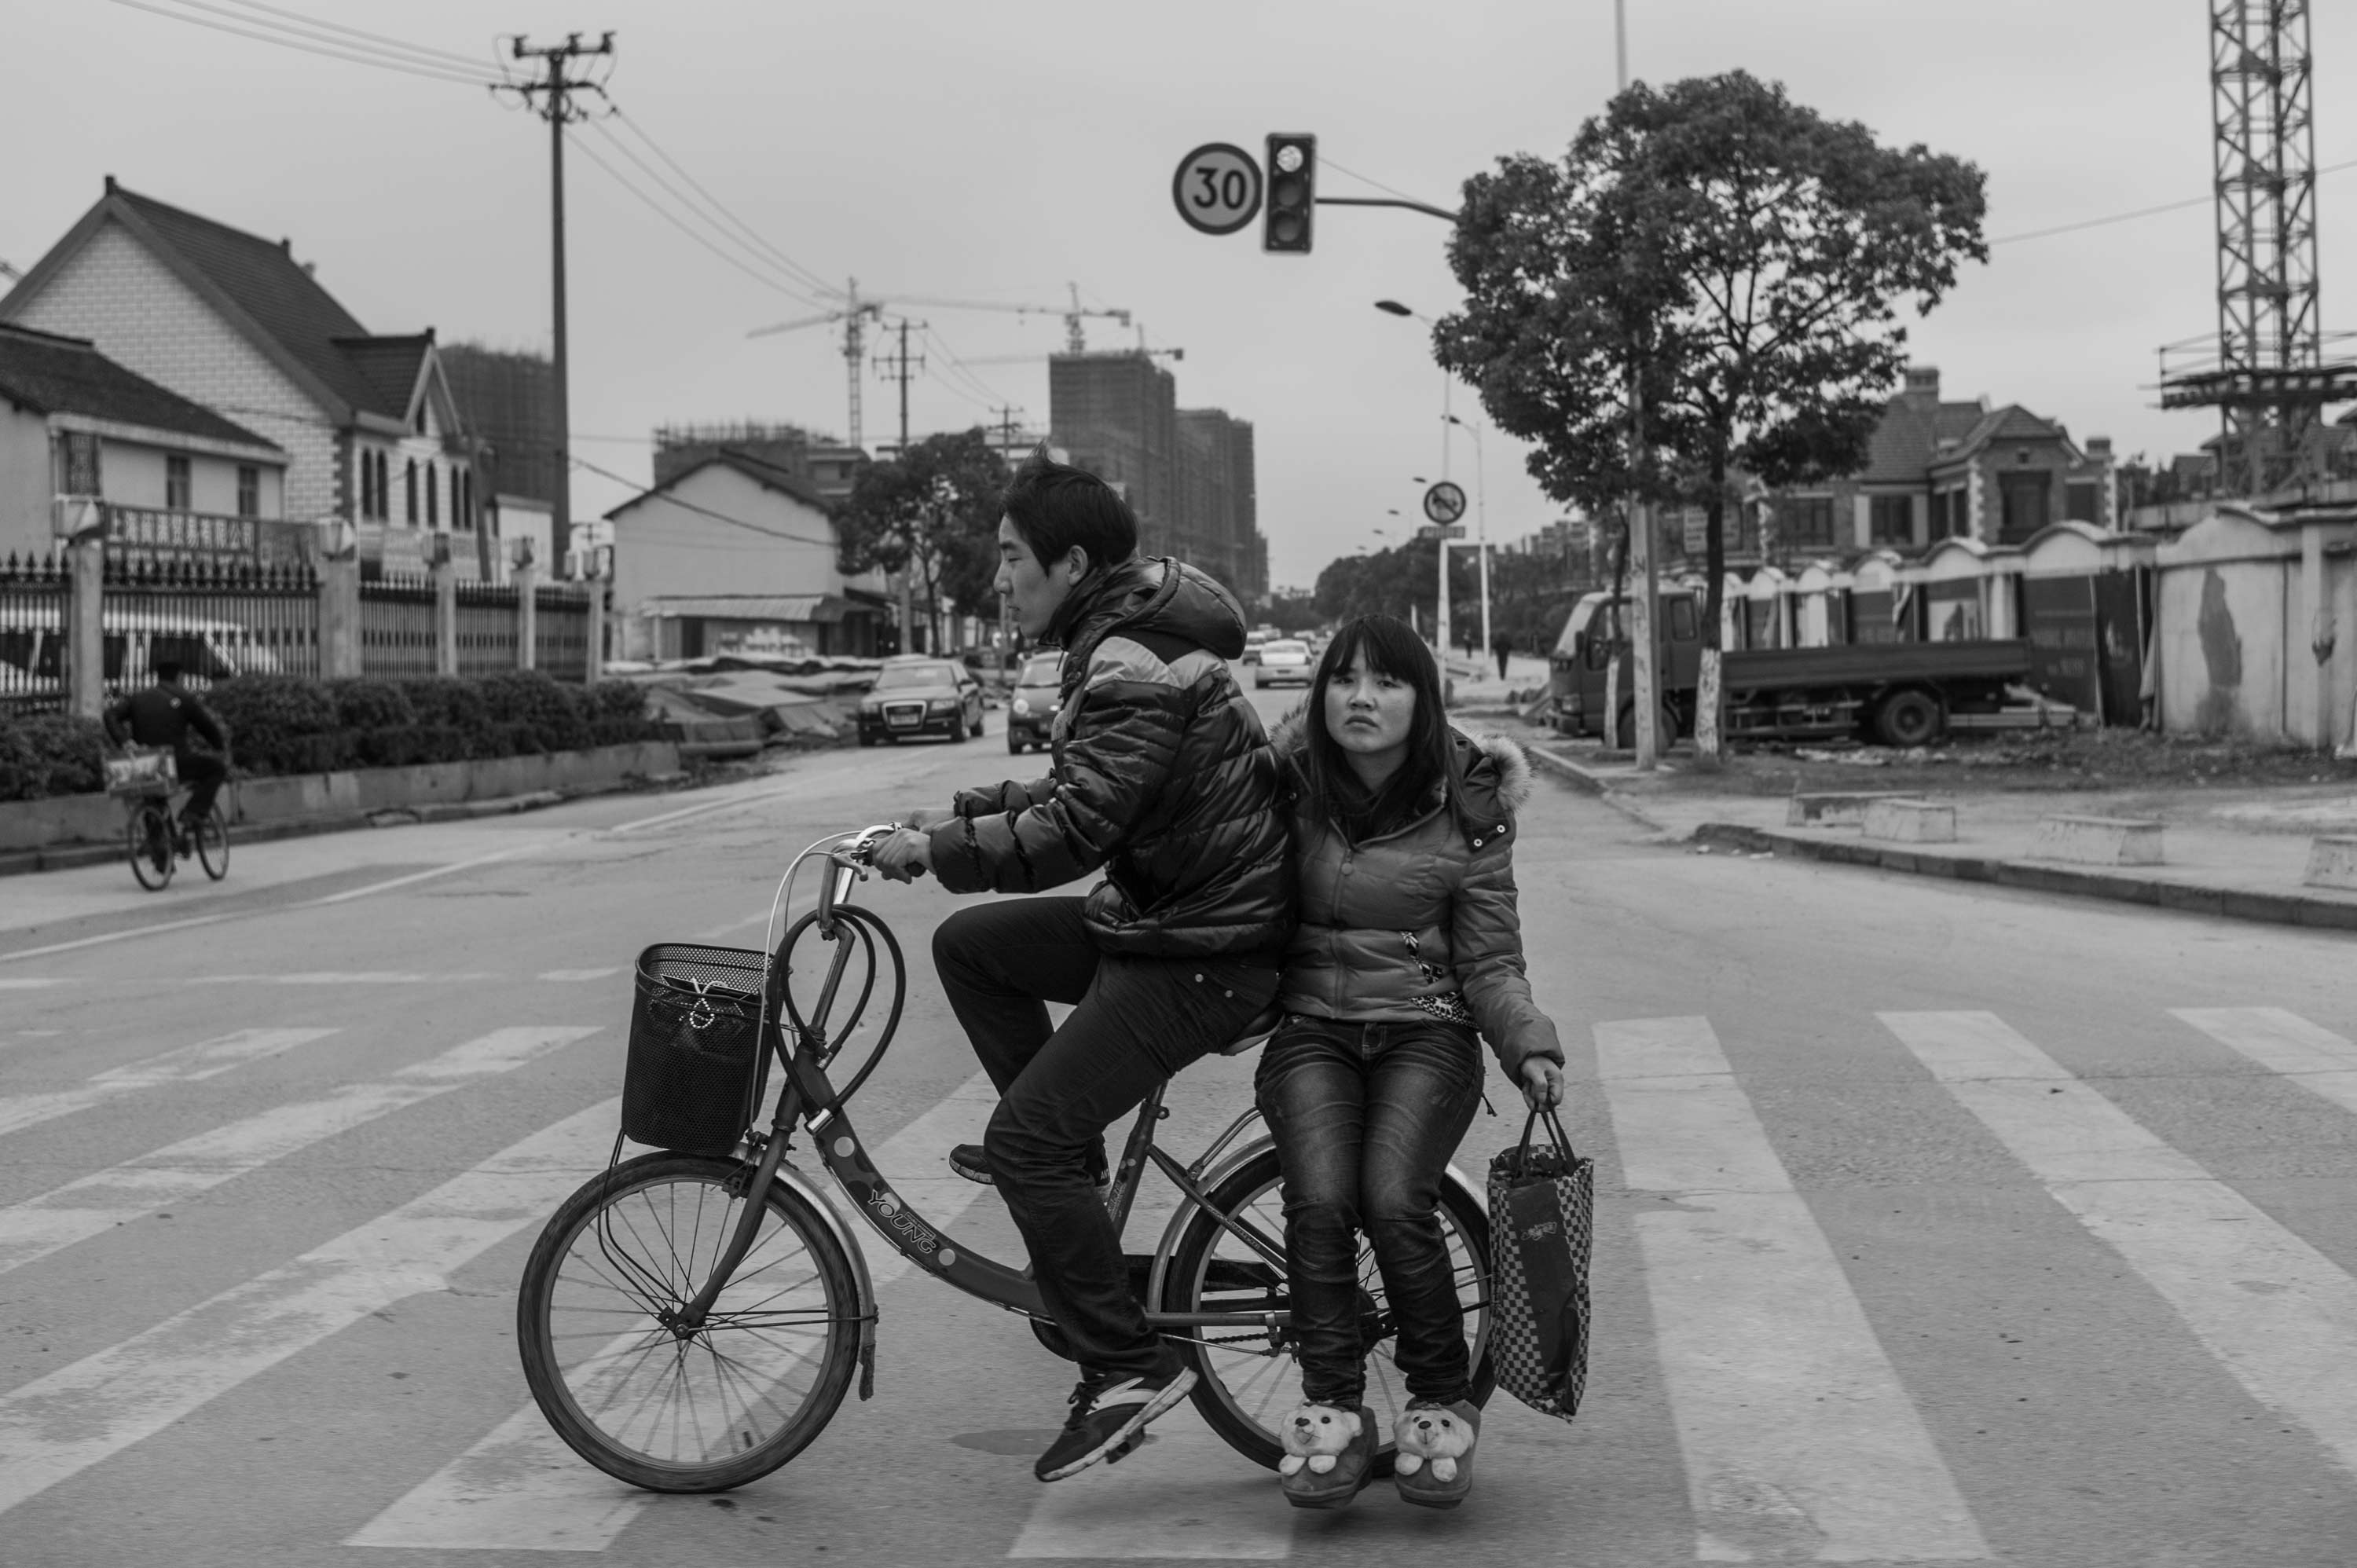 Shanghai (In the back of a Bicycle) 2012